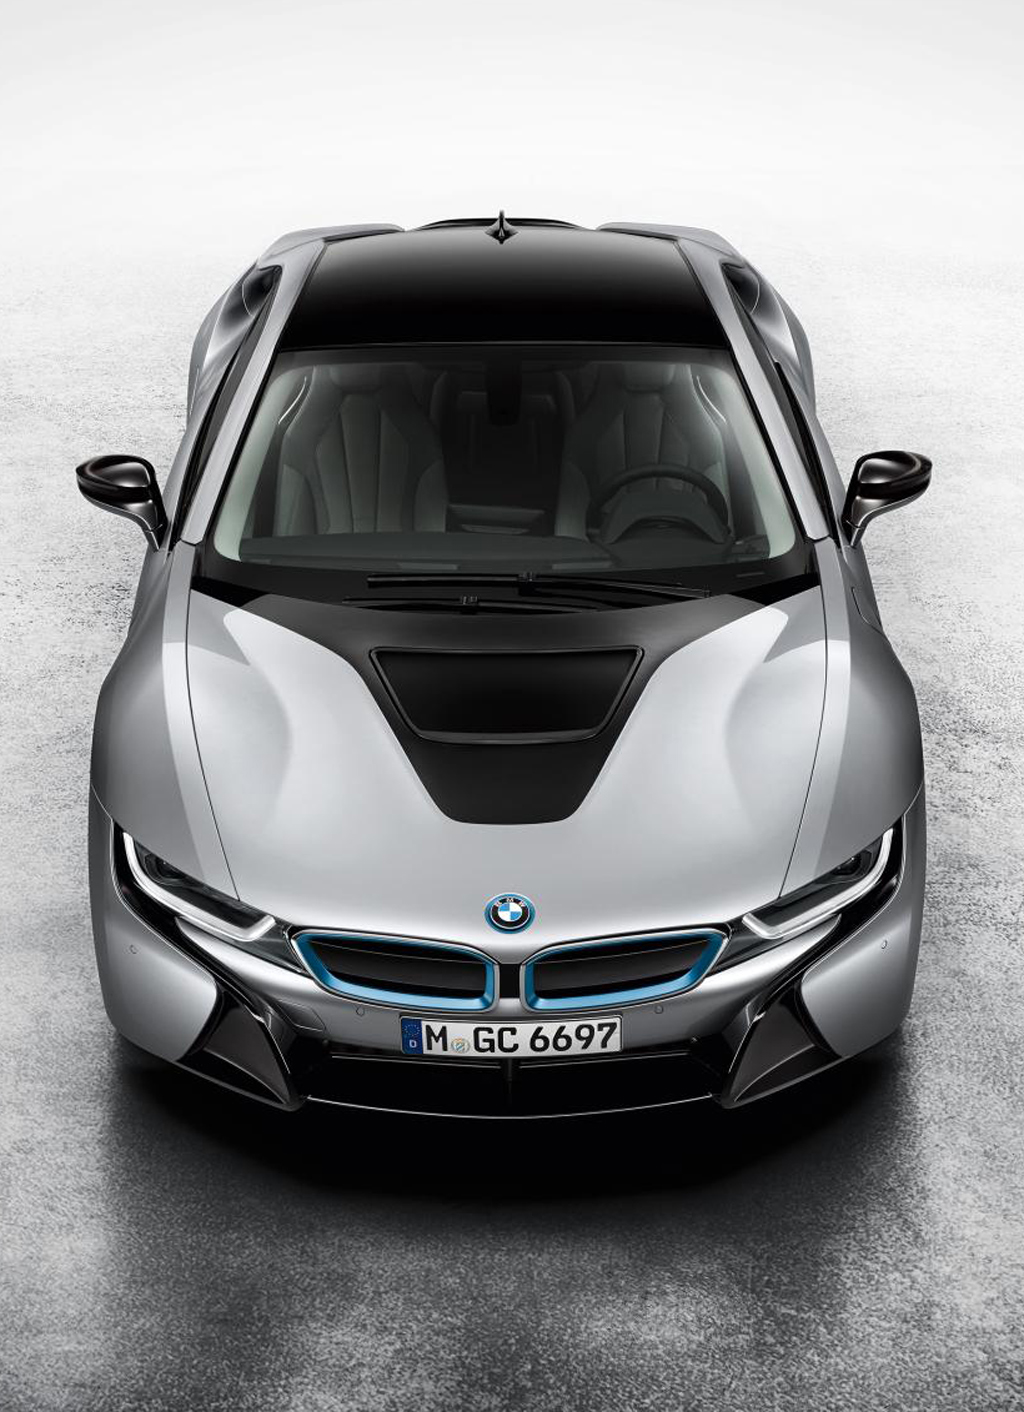 2014 BMW i8 5 2014 BMW i8 – the latest sporting car  features and photos